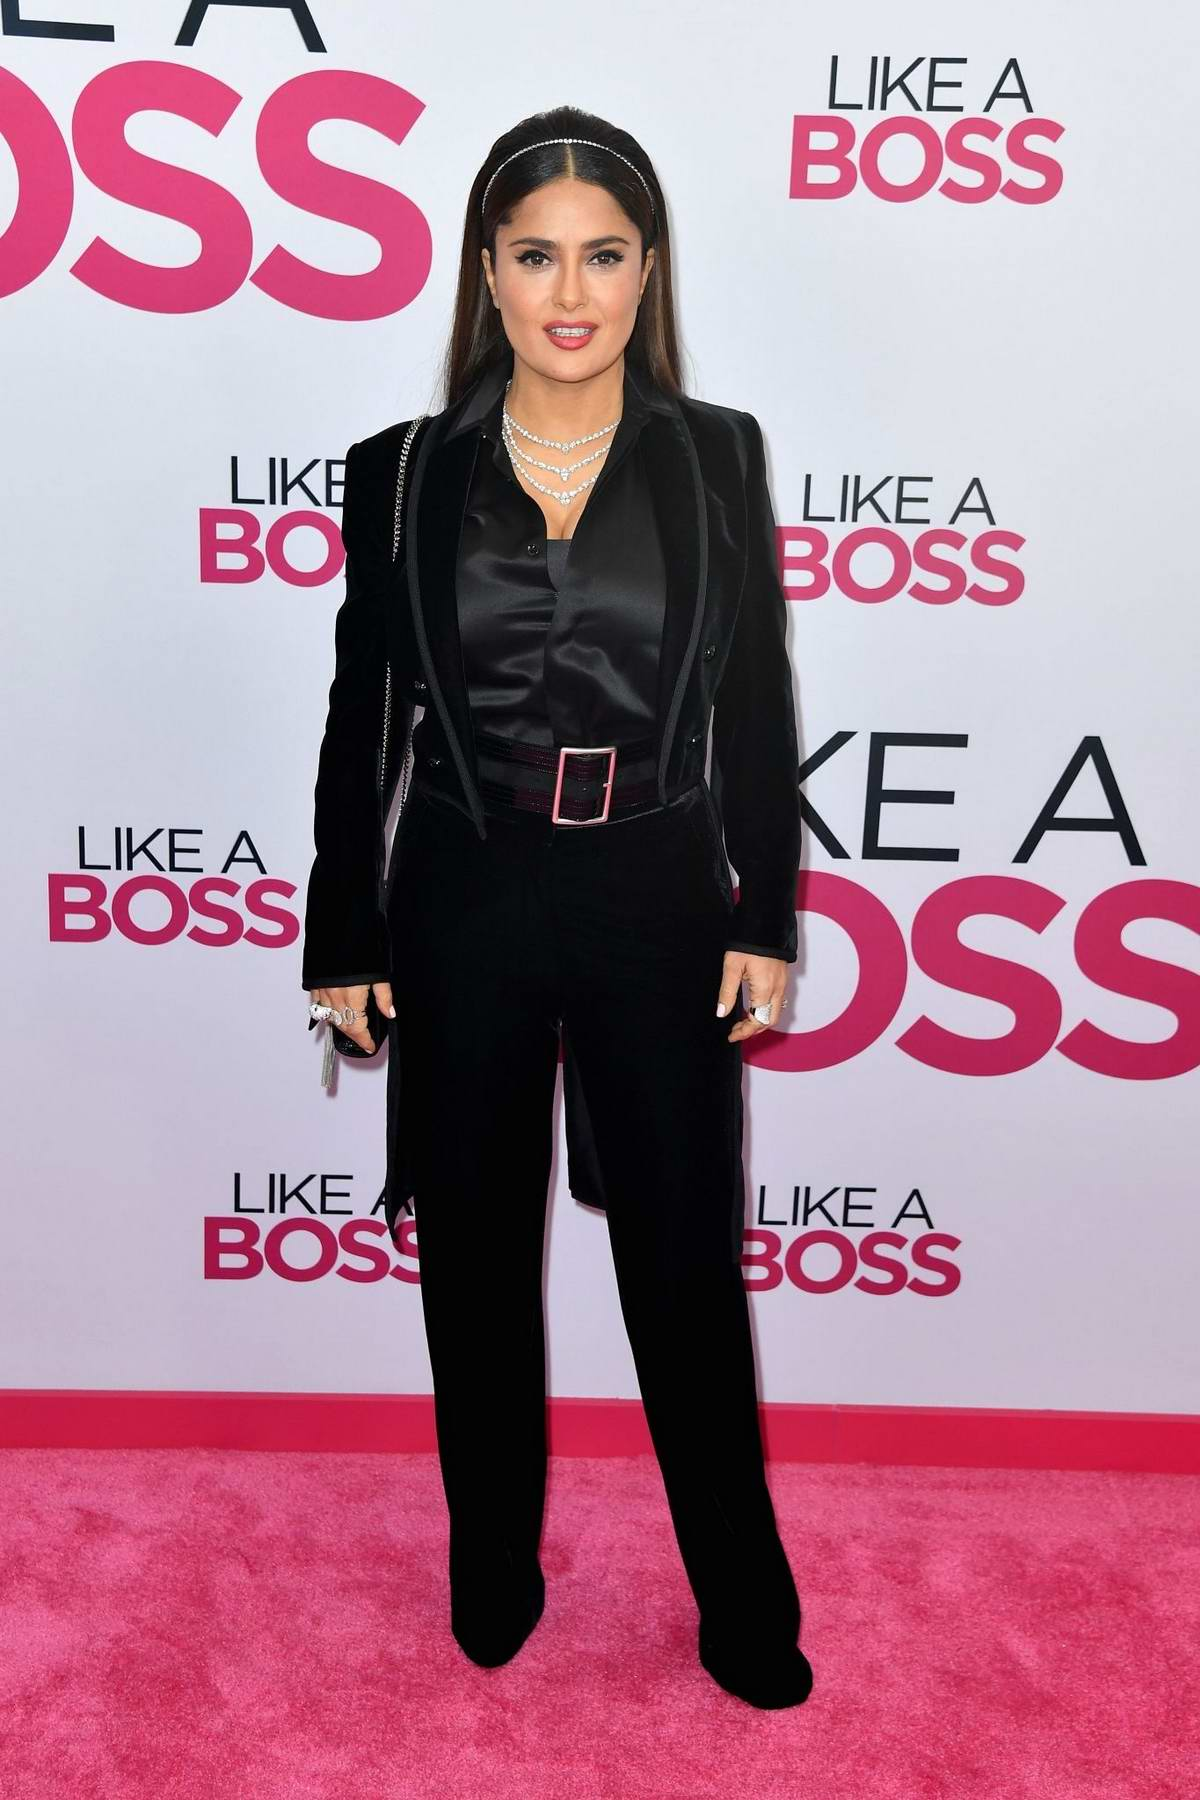 Salma Hayek attends the World Premiere of 'Like A Boss' in New York City